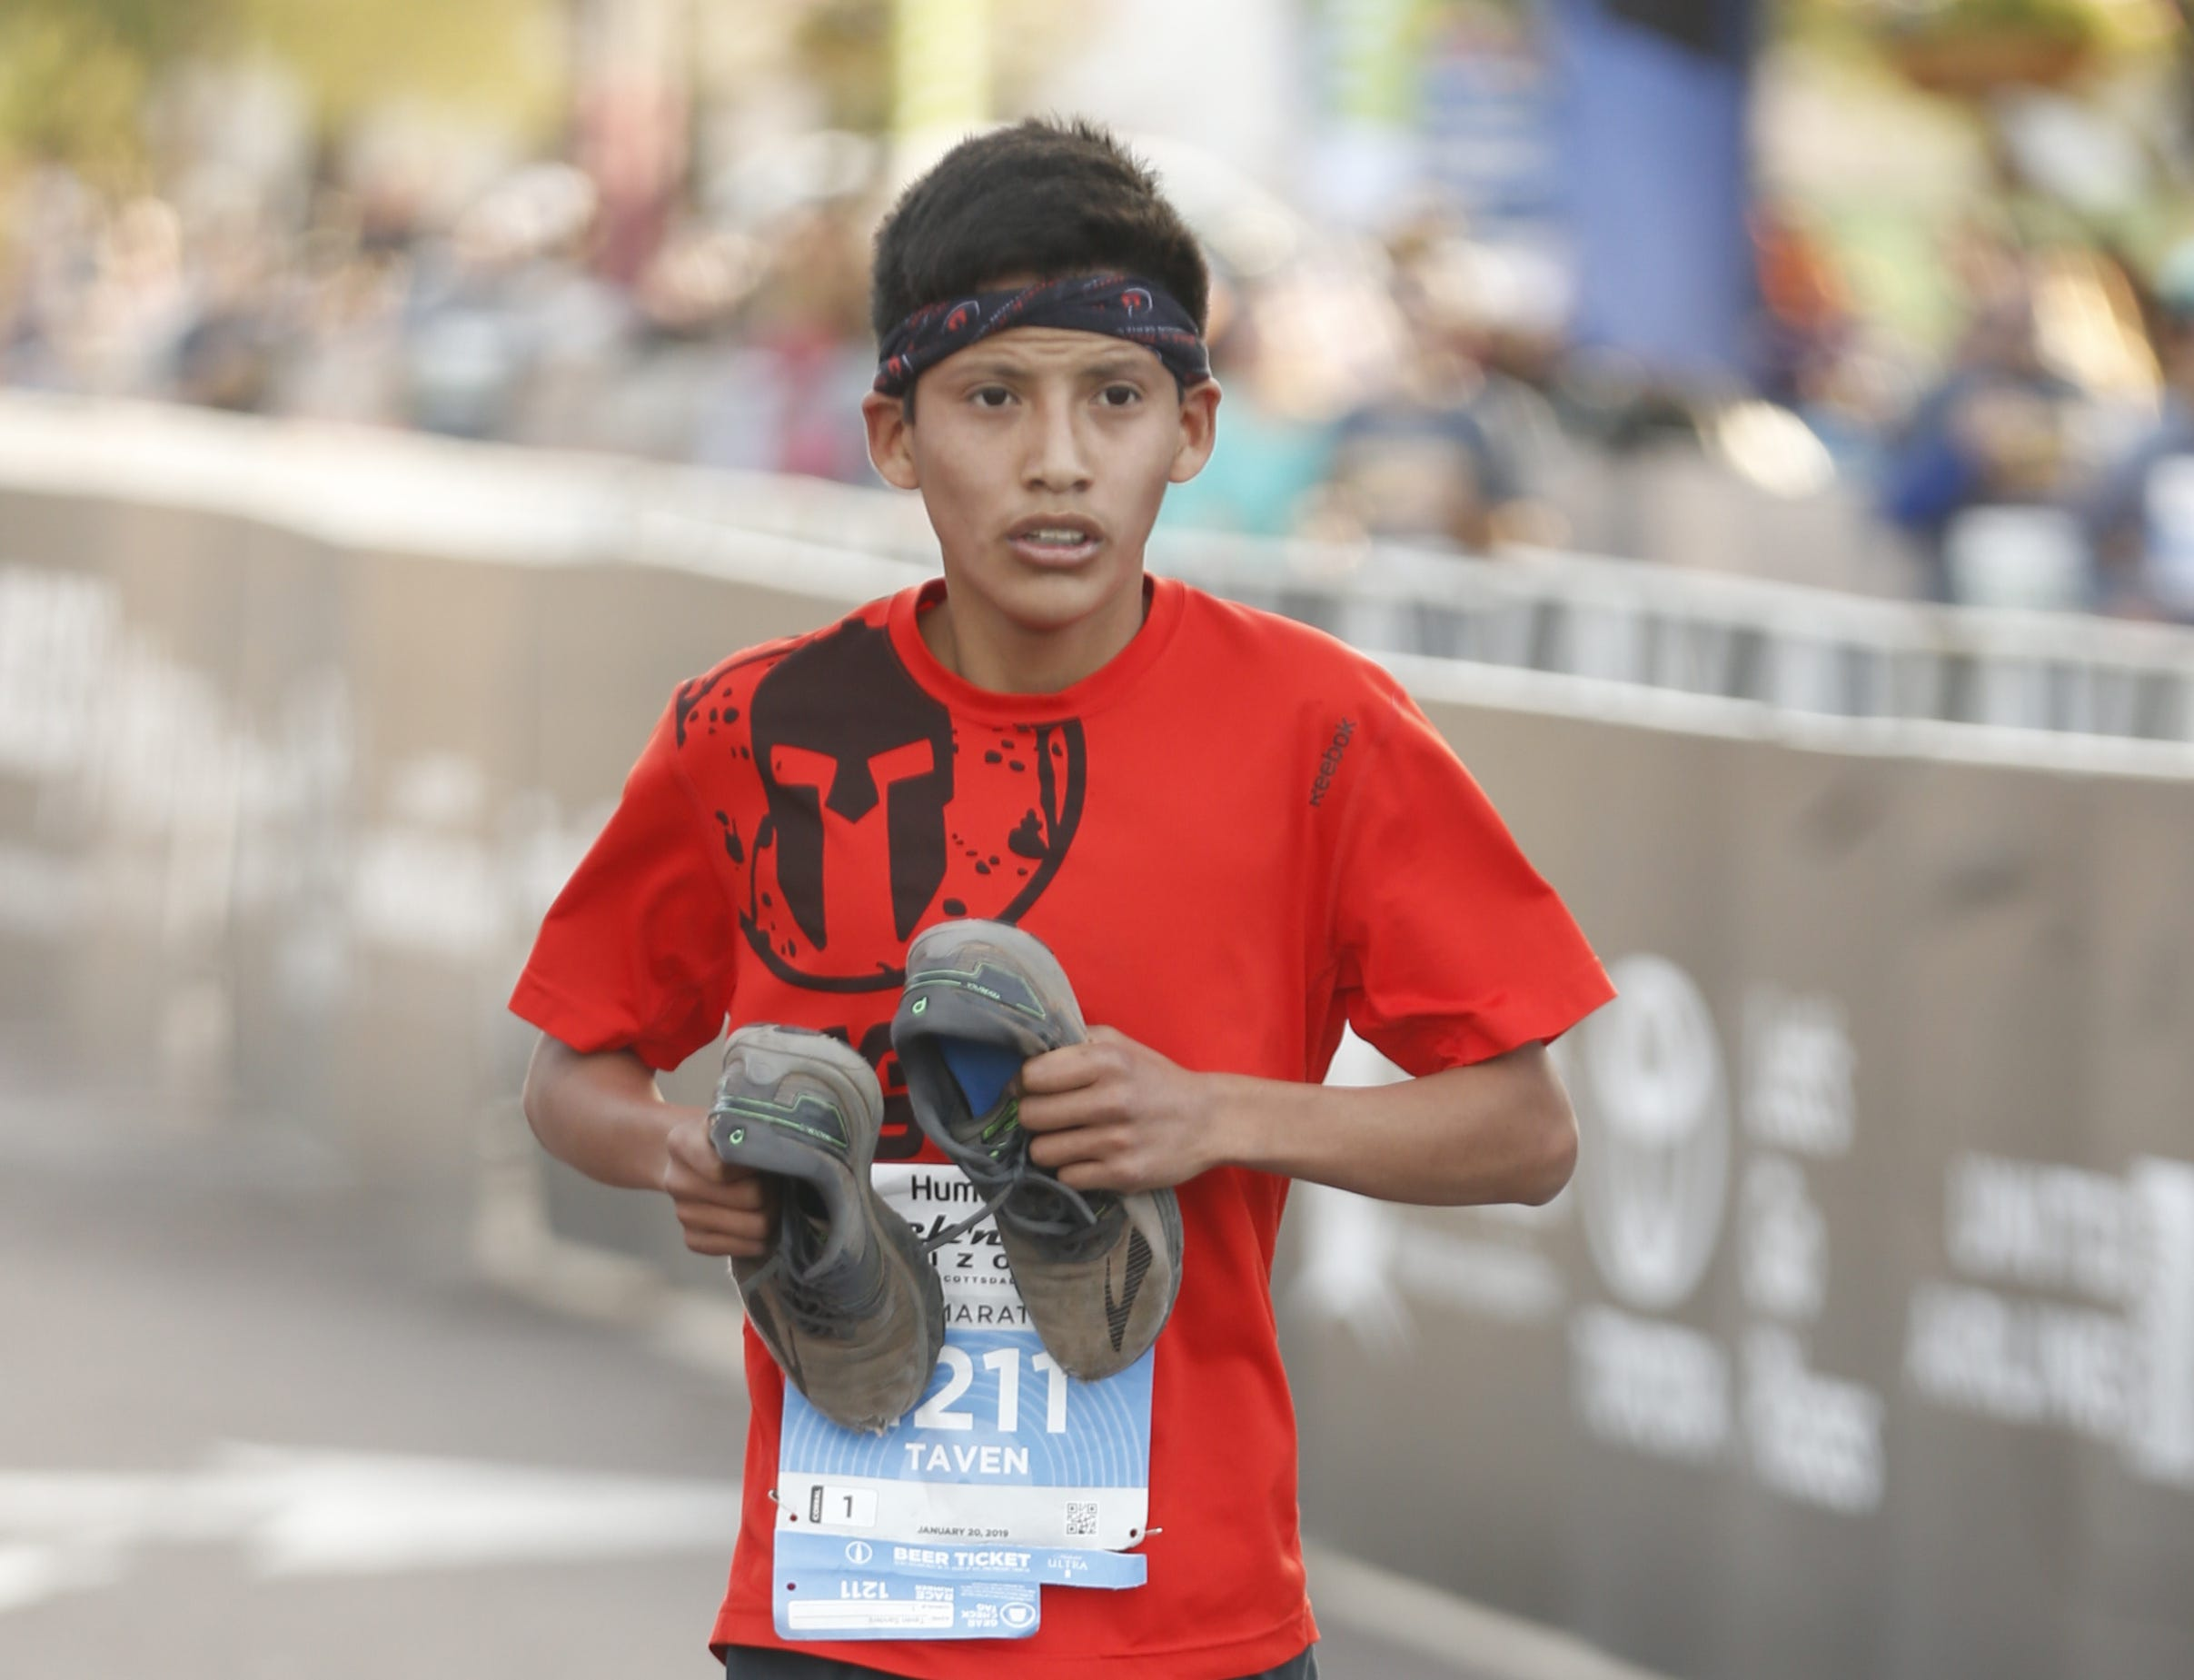 Taven Sanders runs across the finish line holding his shoes during the Rock 'N' Roll half-marathon in Tempe on Jan. 20, 2019.